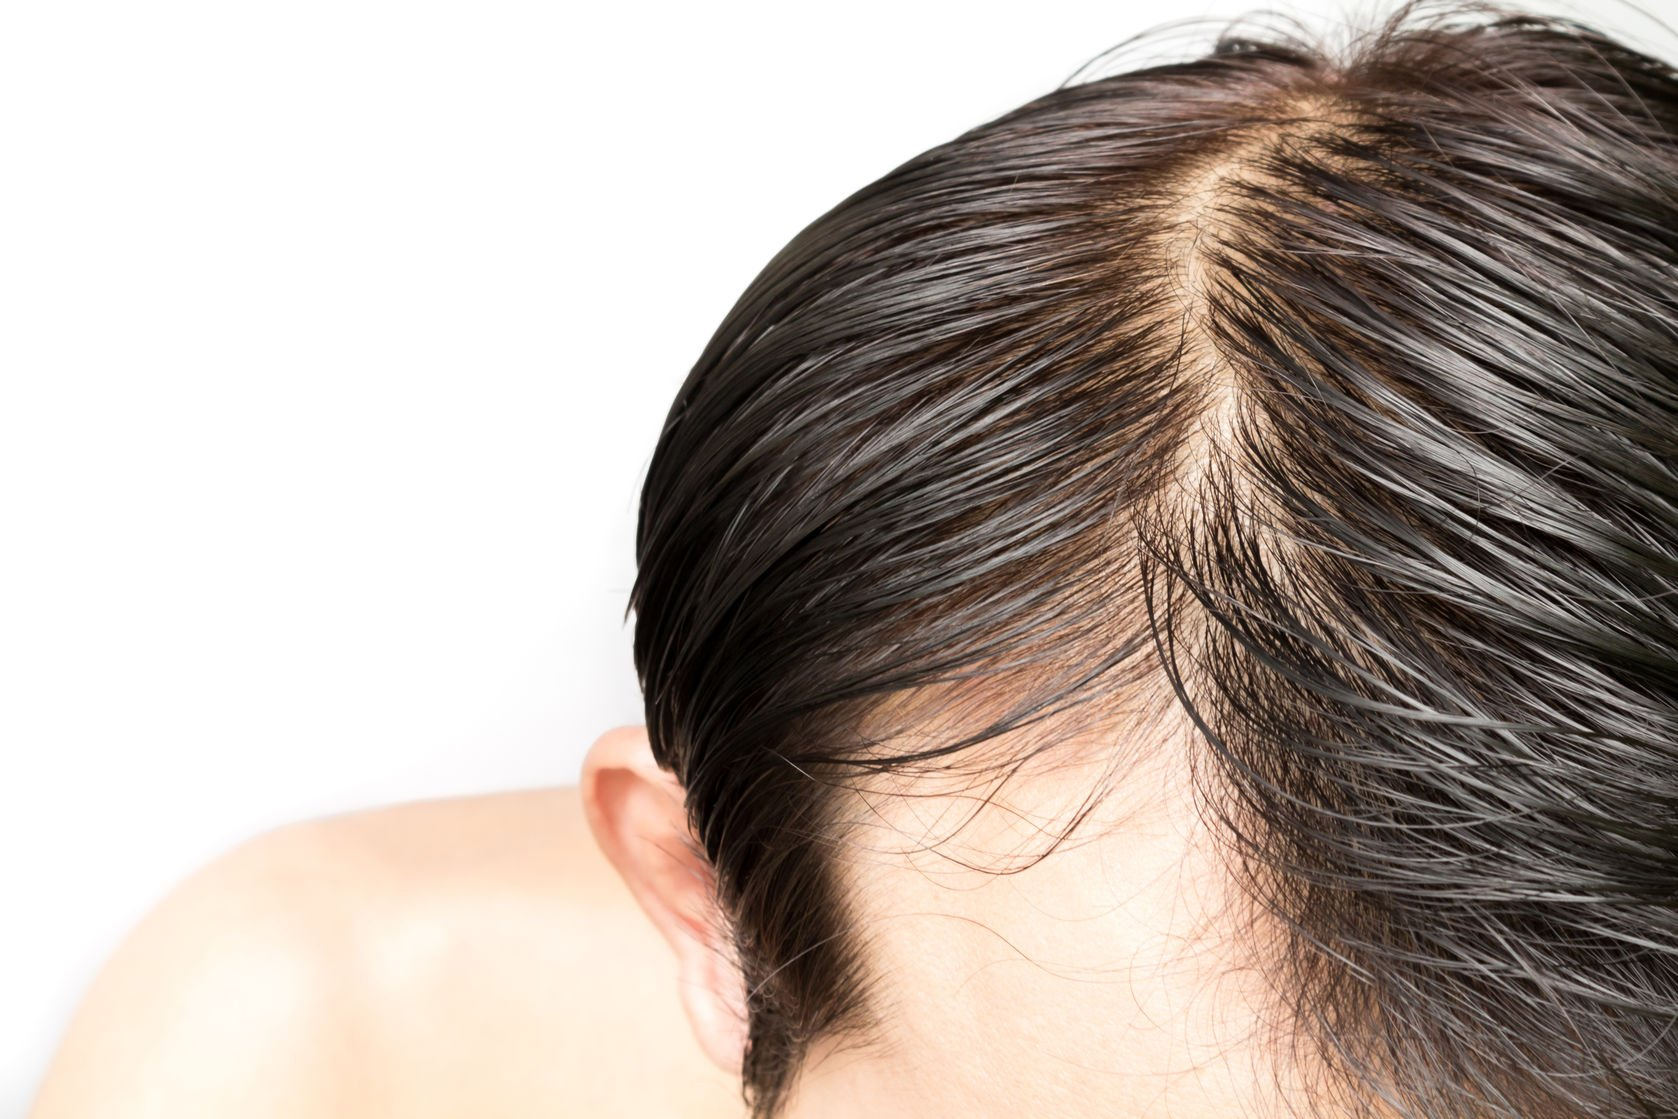 66314221 - closeup young man serious hair loss problem for hair loss concept